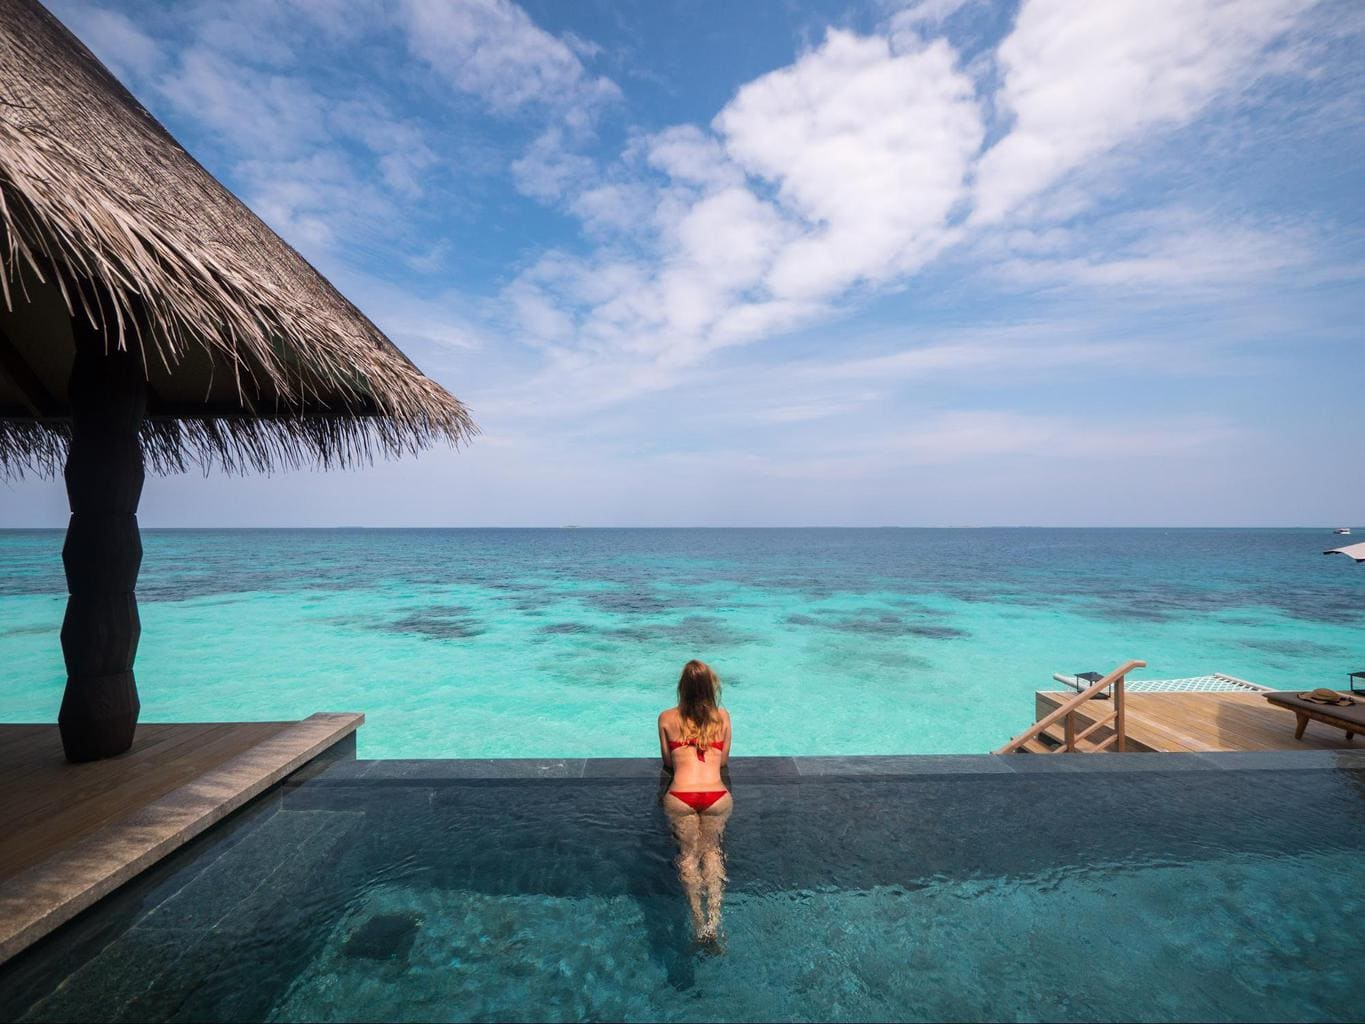 Infinity pool of the over water villas at Joali Maldives